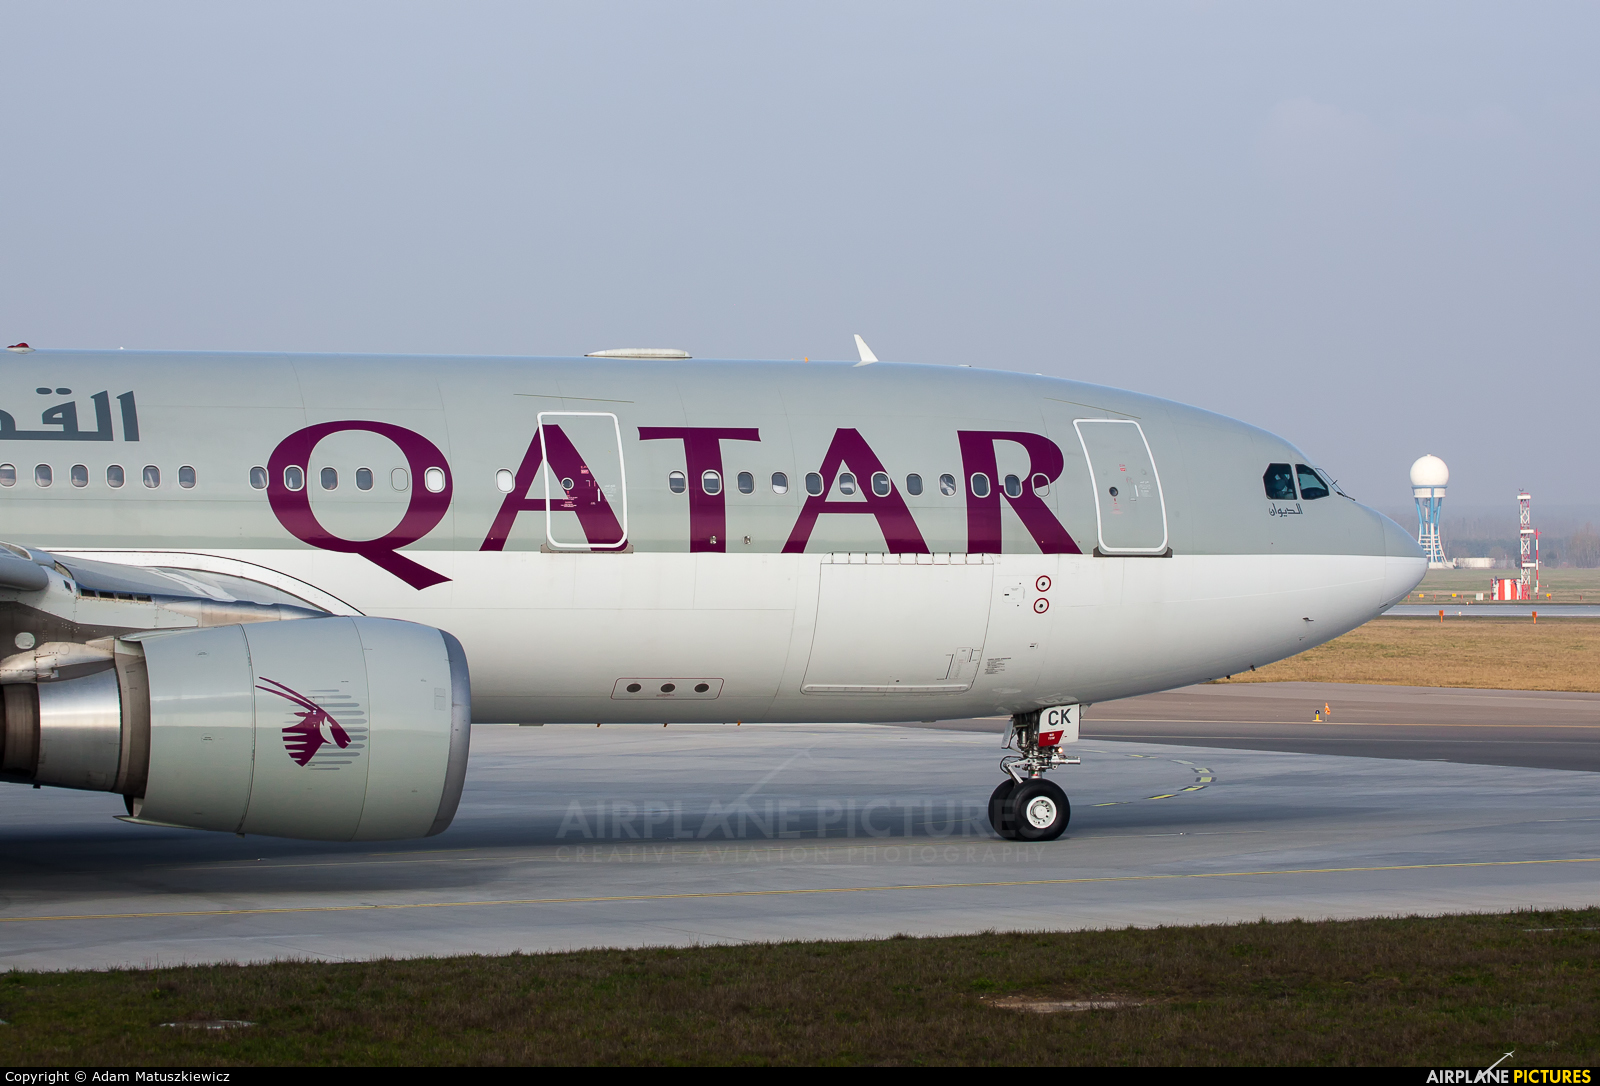 Qatar Airways A7-ACK aircraft at Katowice - Pyrzowice